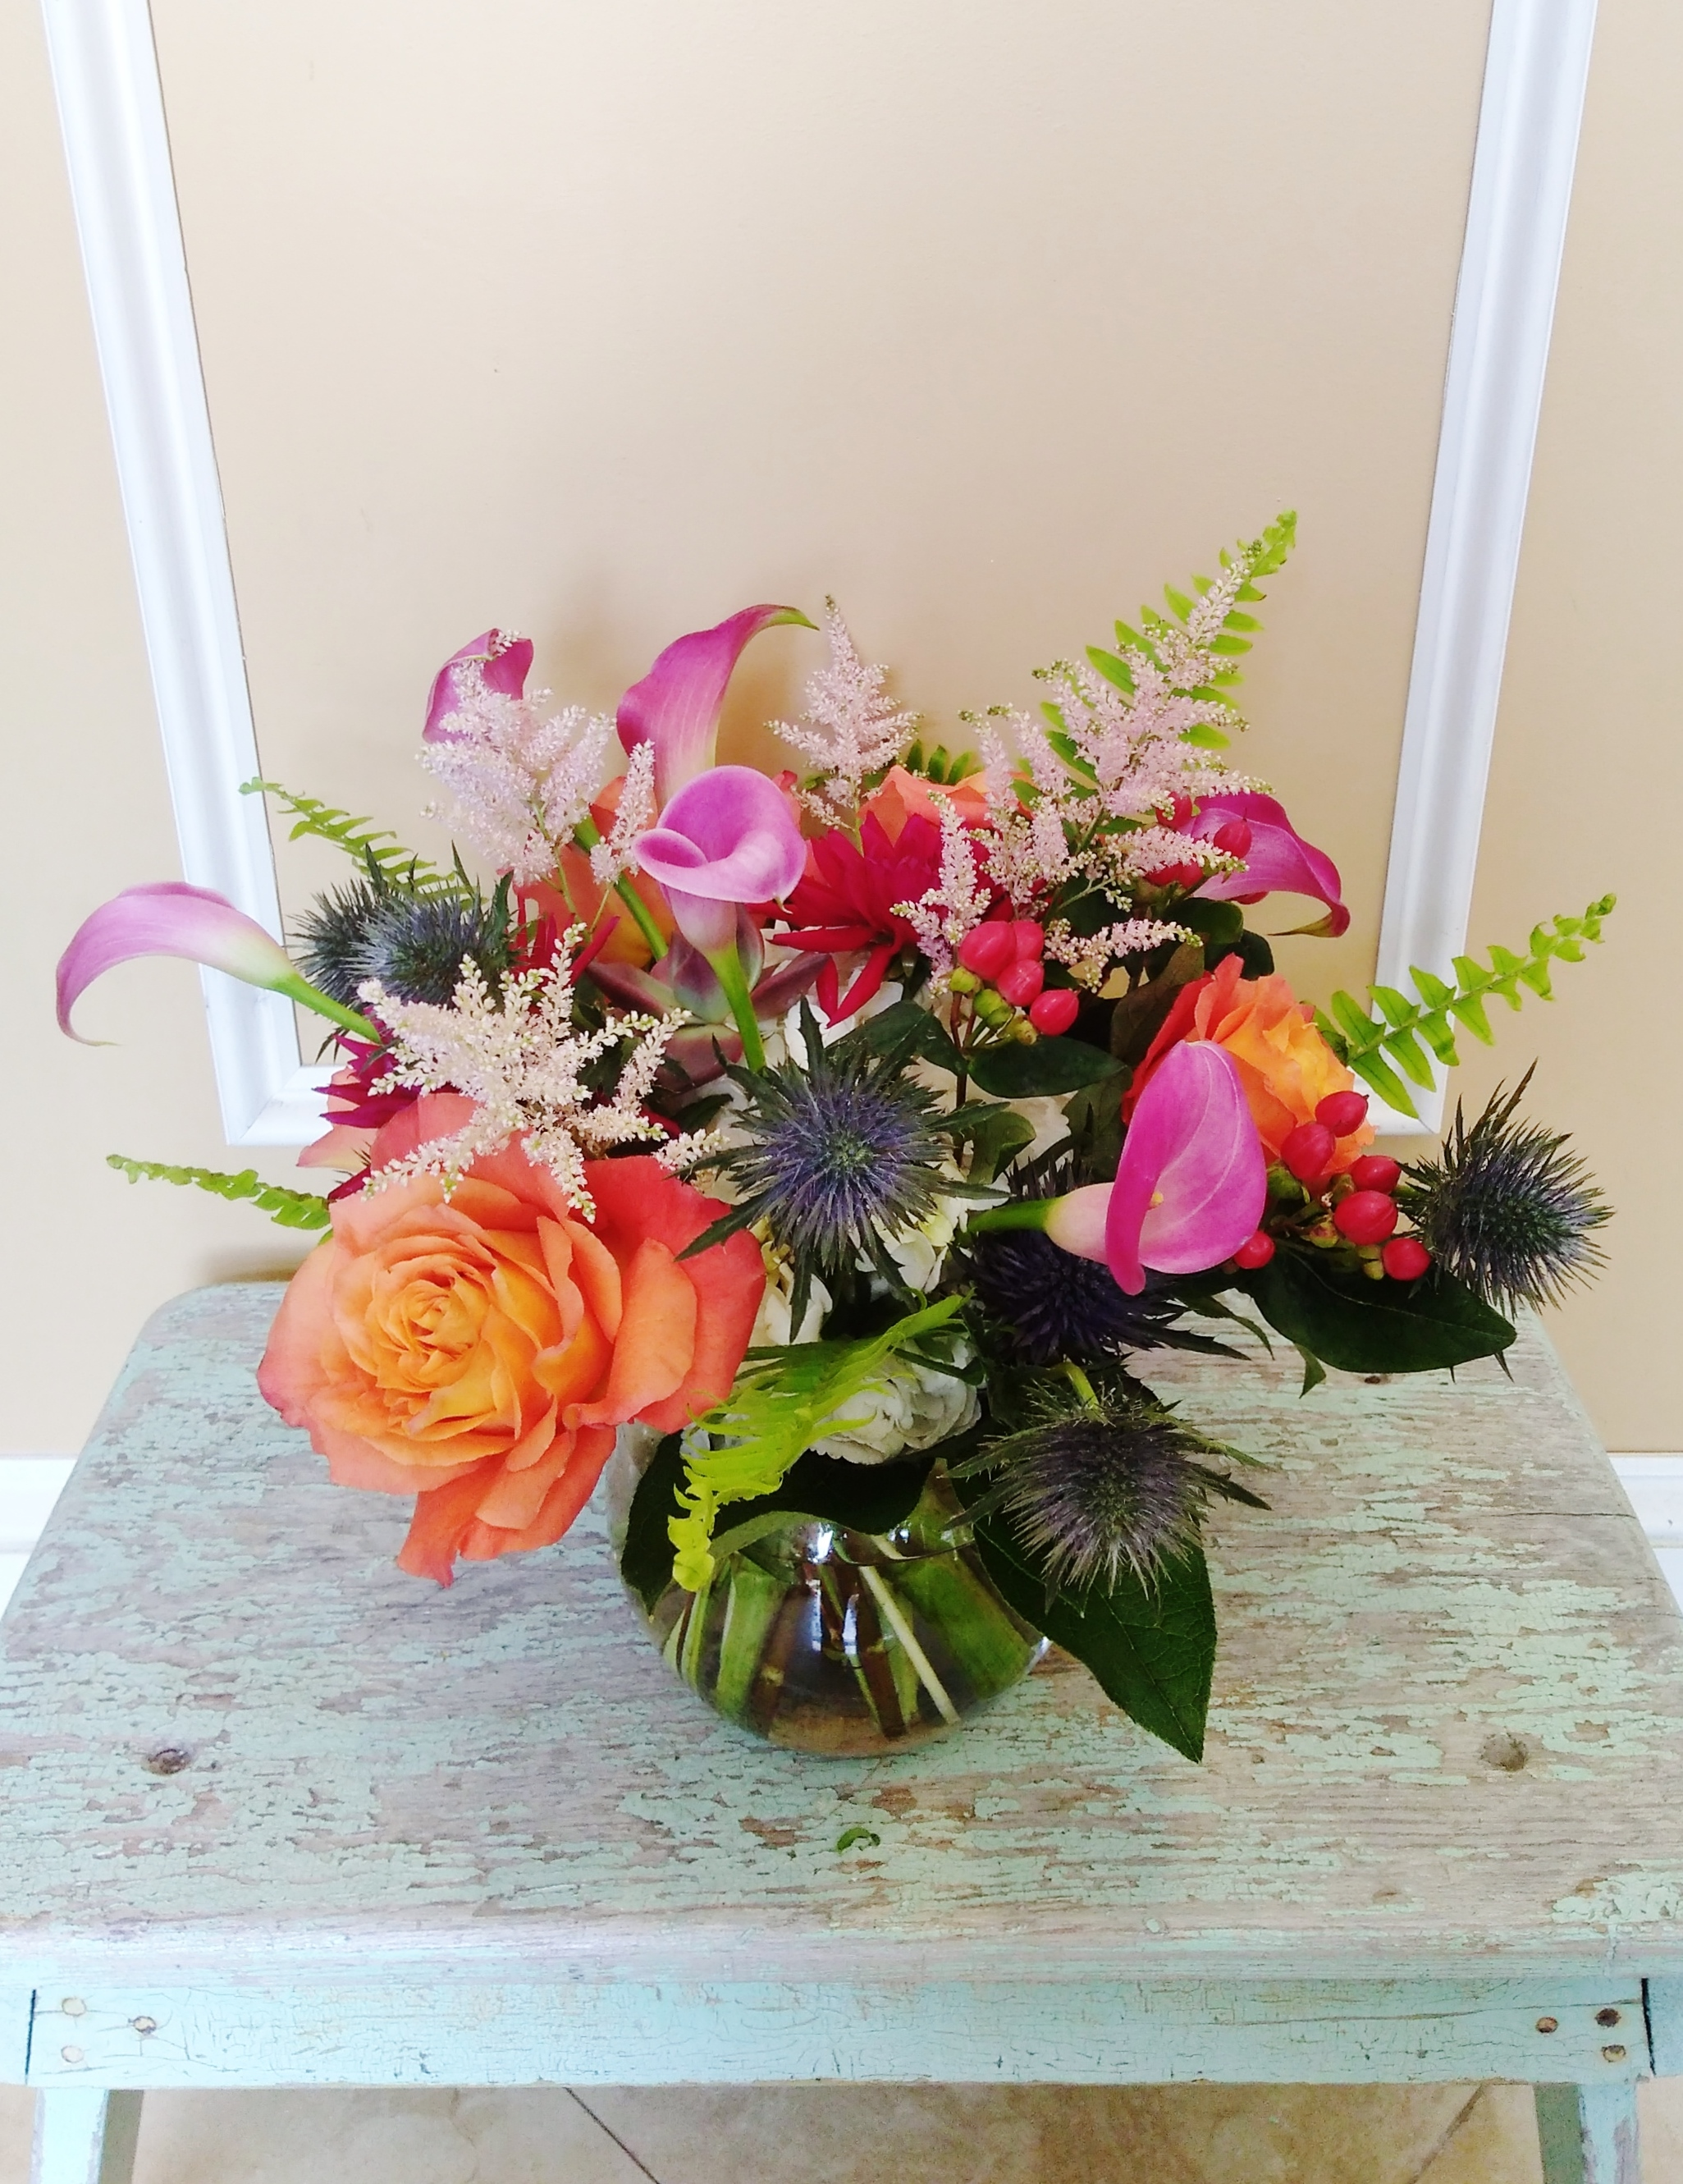 A5 $65-$85 Cluster-style arrangement. $75 as shown.